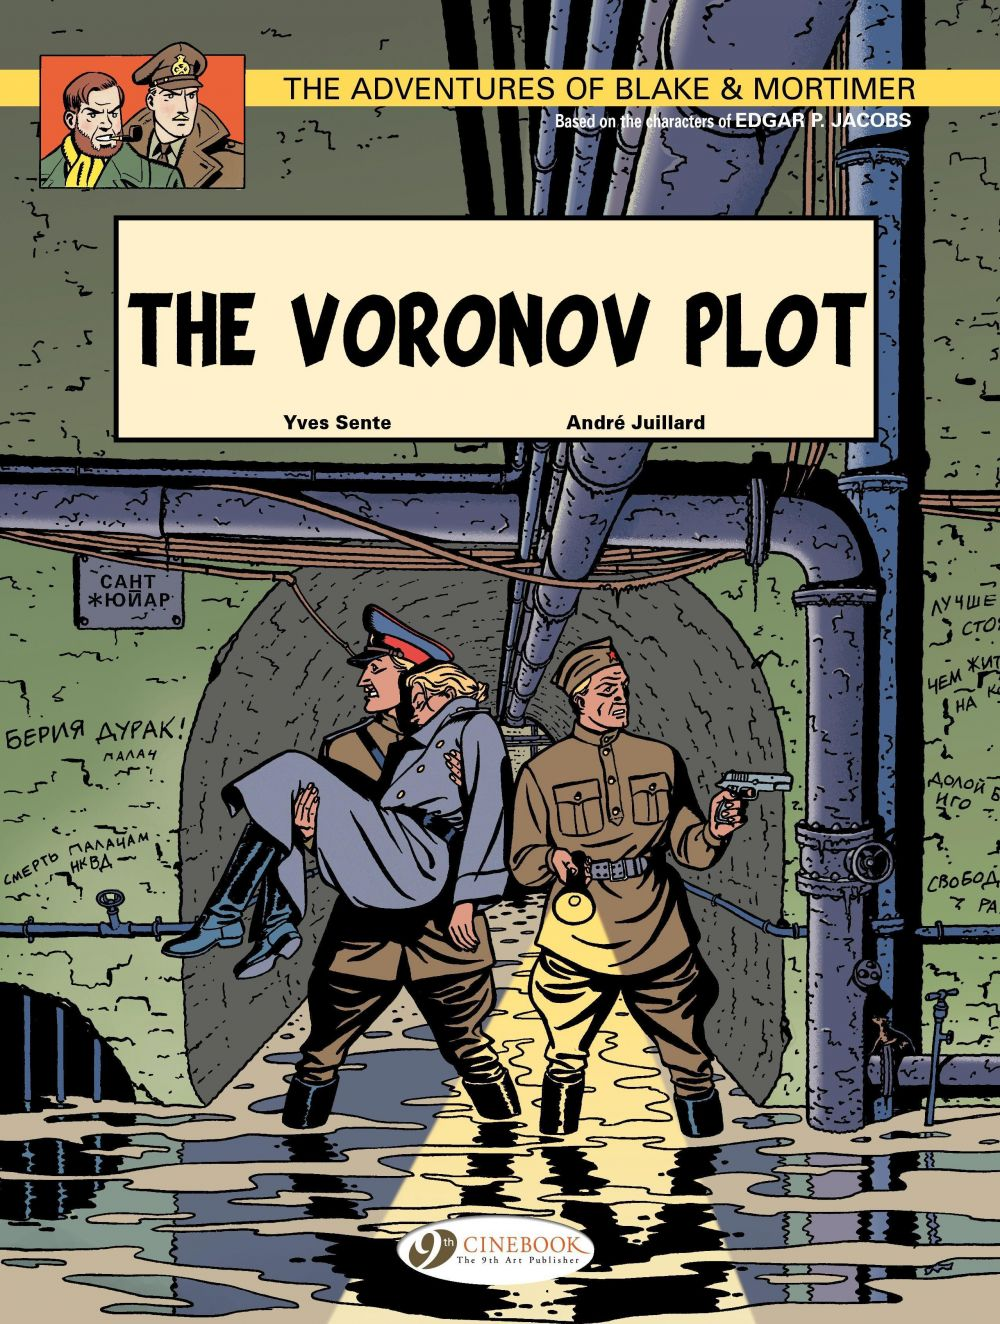 Blake & Mortimer - Volume 8 - The Voronov Plot